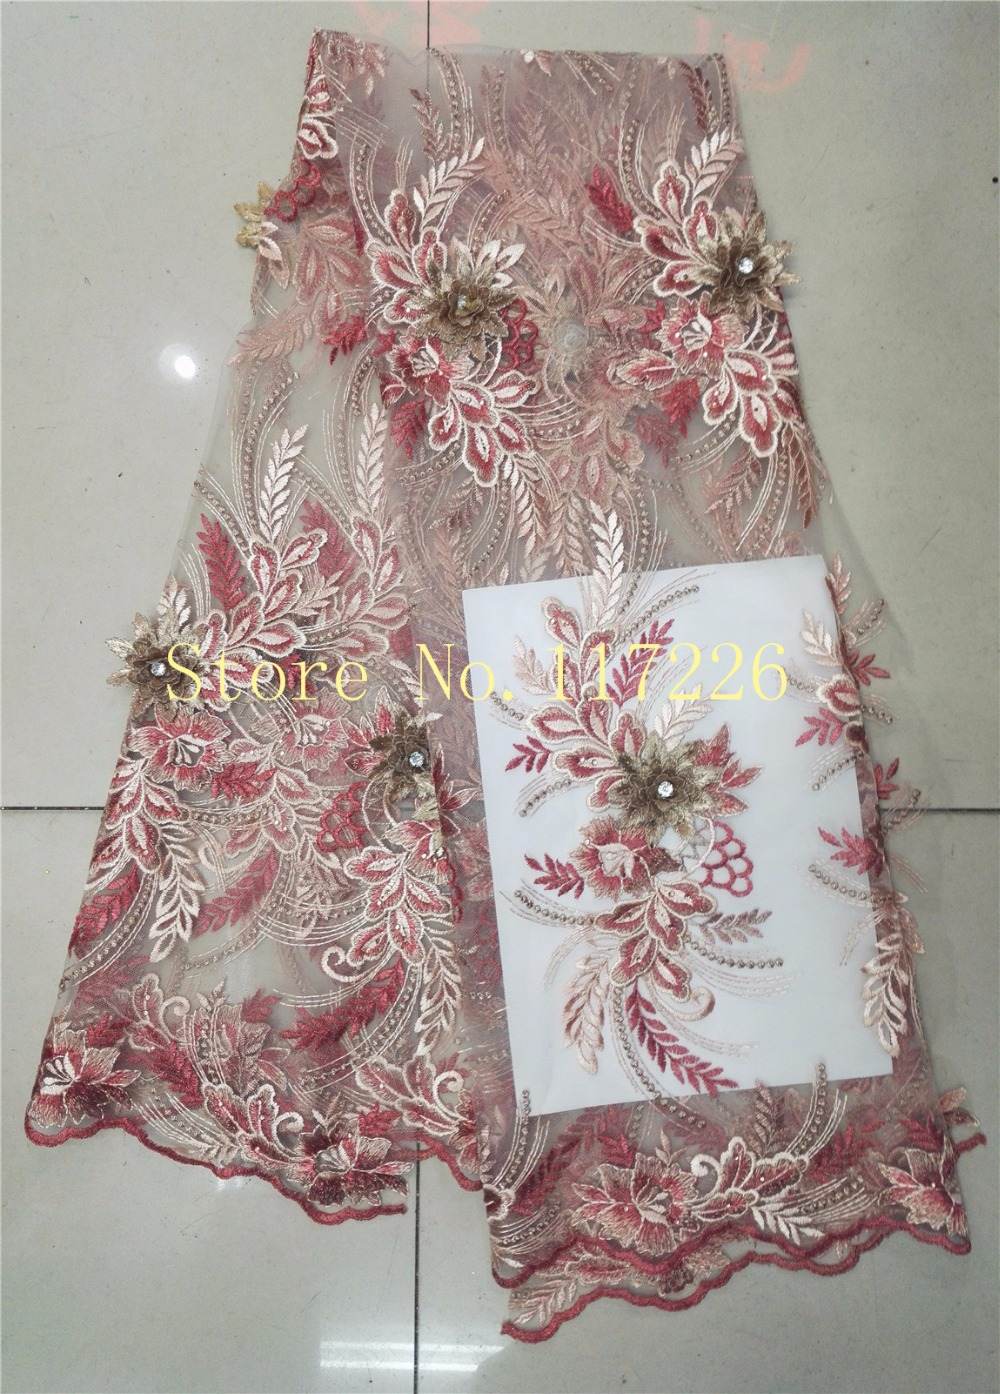 Free Shipping 3d Flowers Embroidery Designs Jrb 61913 High Quality